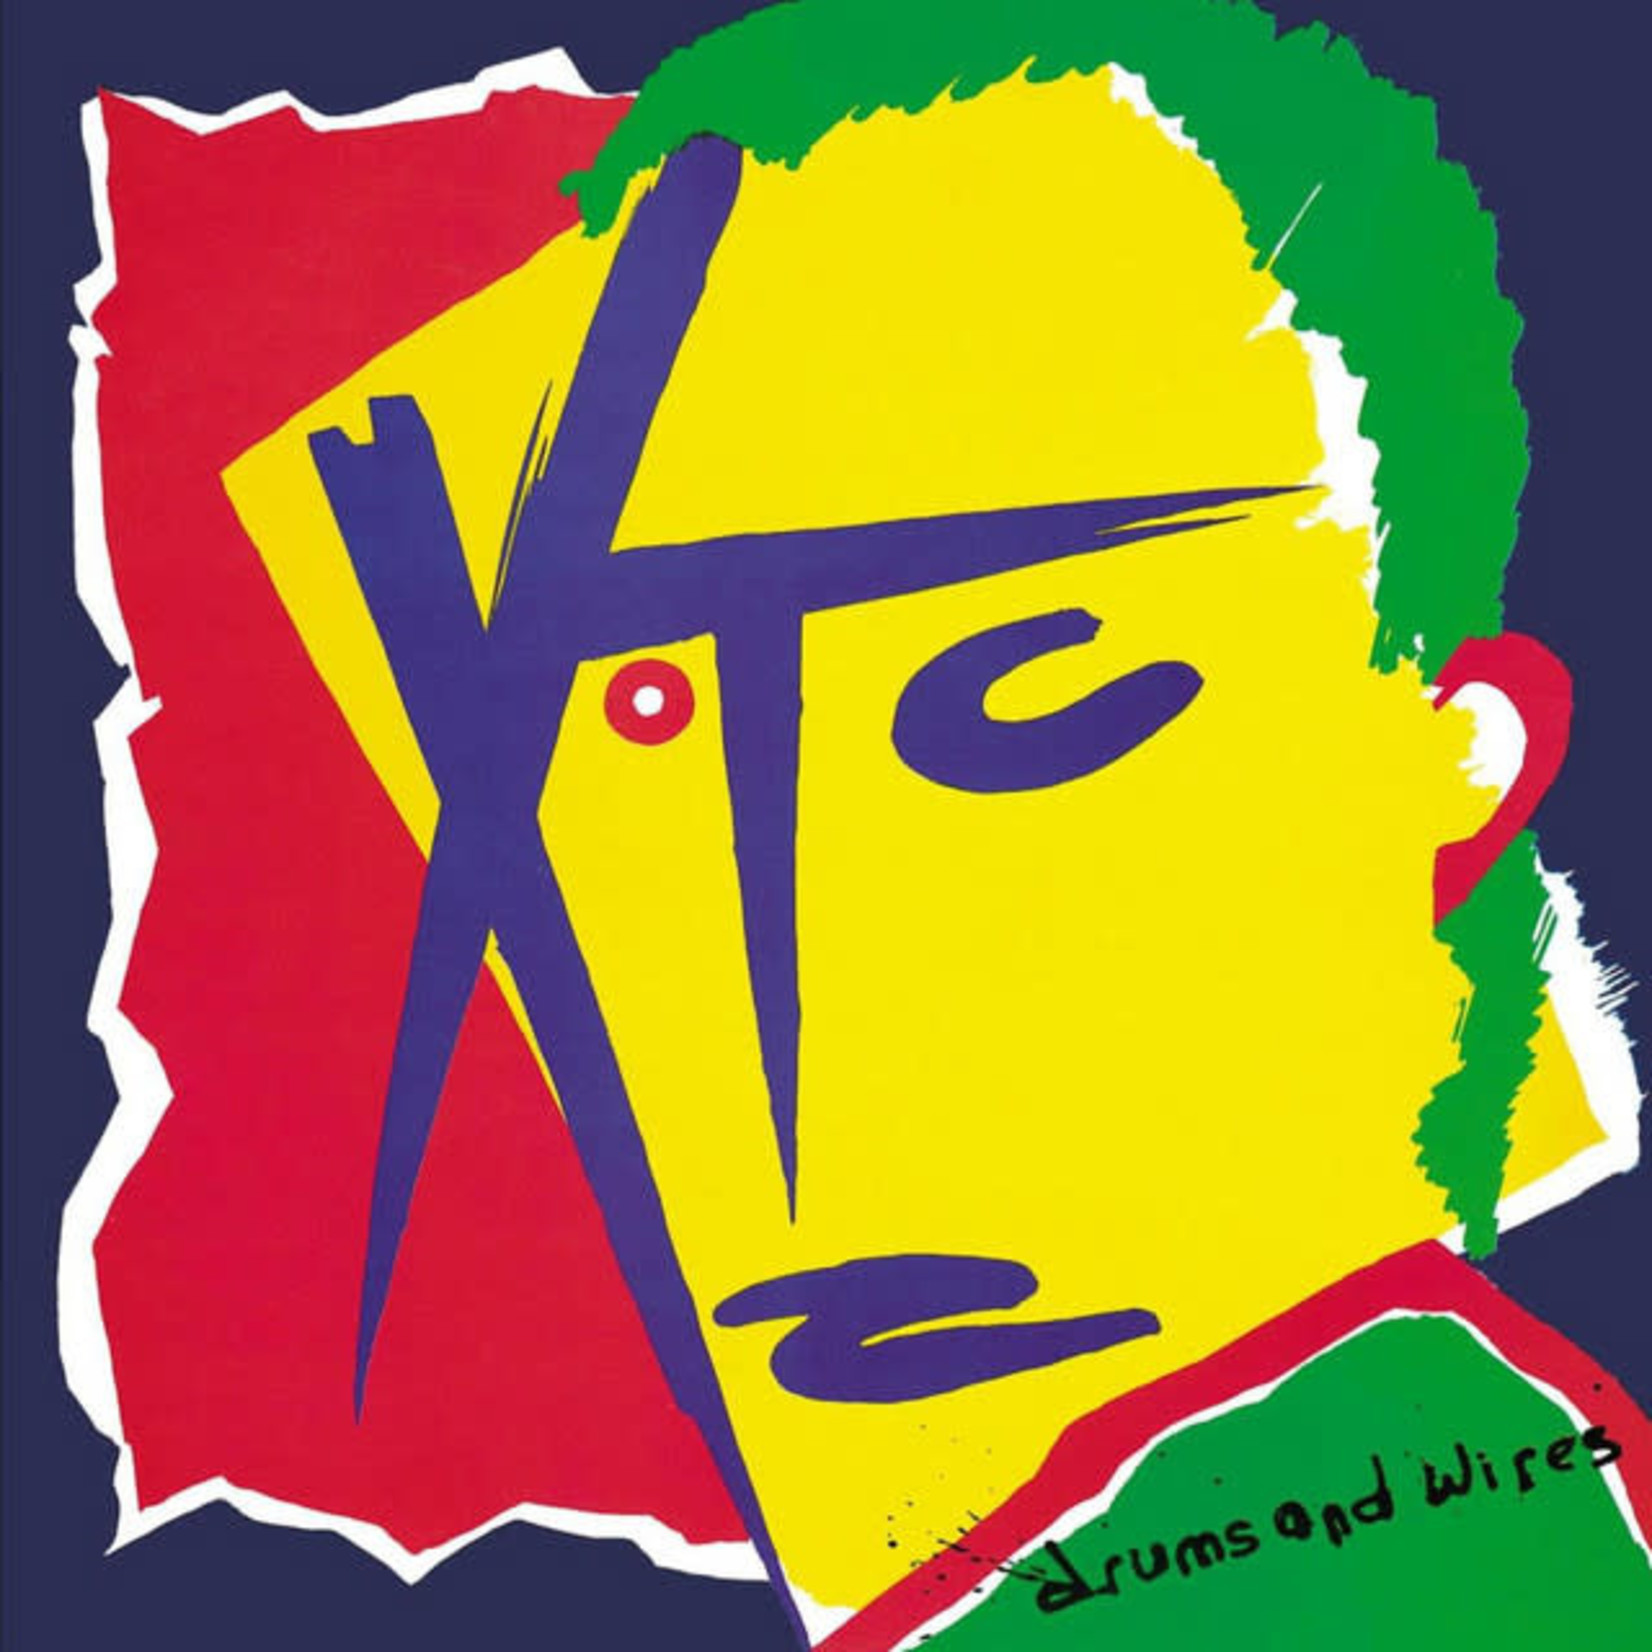 Vinyl XTC - Drums and Wires